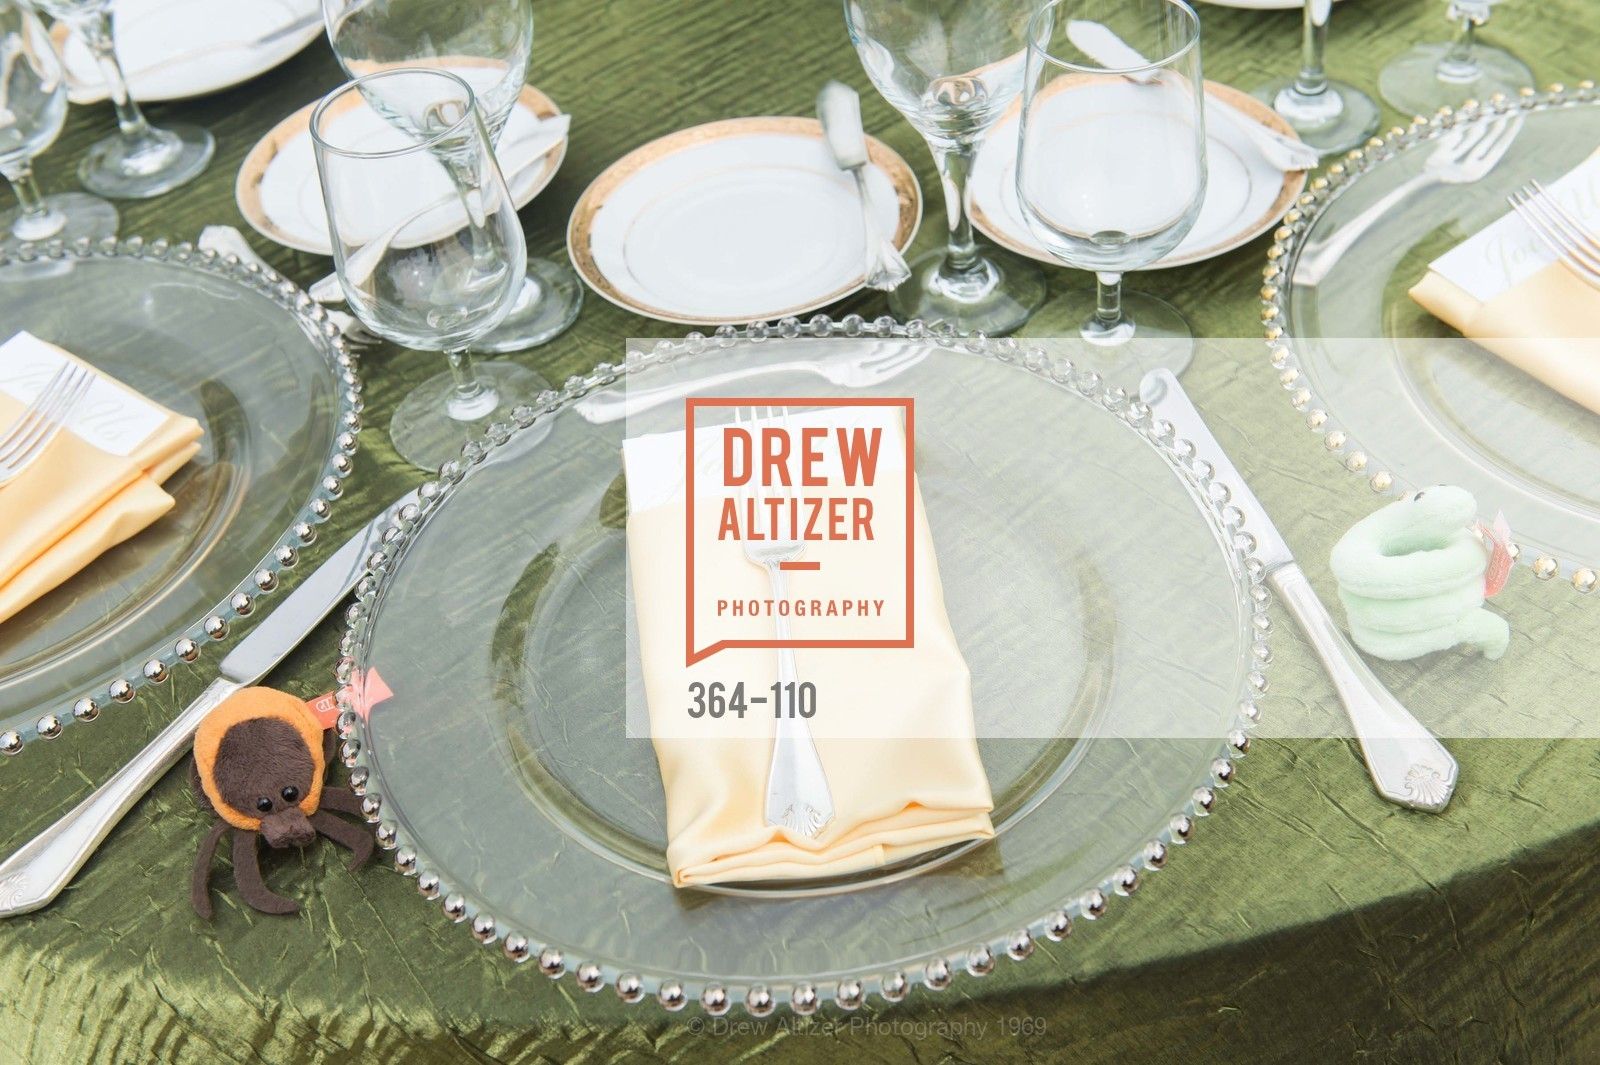 Extras, LYME AID 2015 Benefiting the Bay Area Lyme Foundation, May 16th, 2015, Photo,Drew Altizer, Drew Altizer Photography, full-service event agency, private events, San Francisco photographer, photographer California